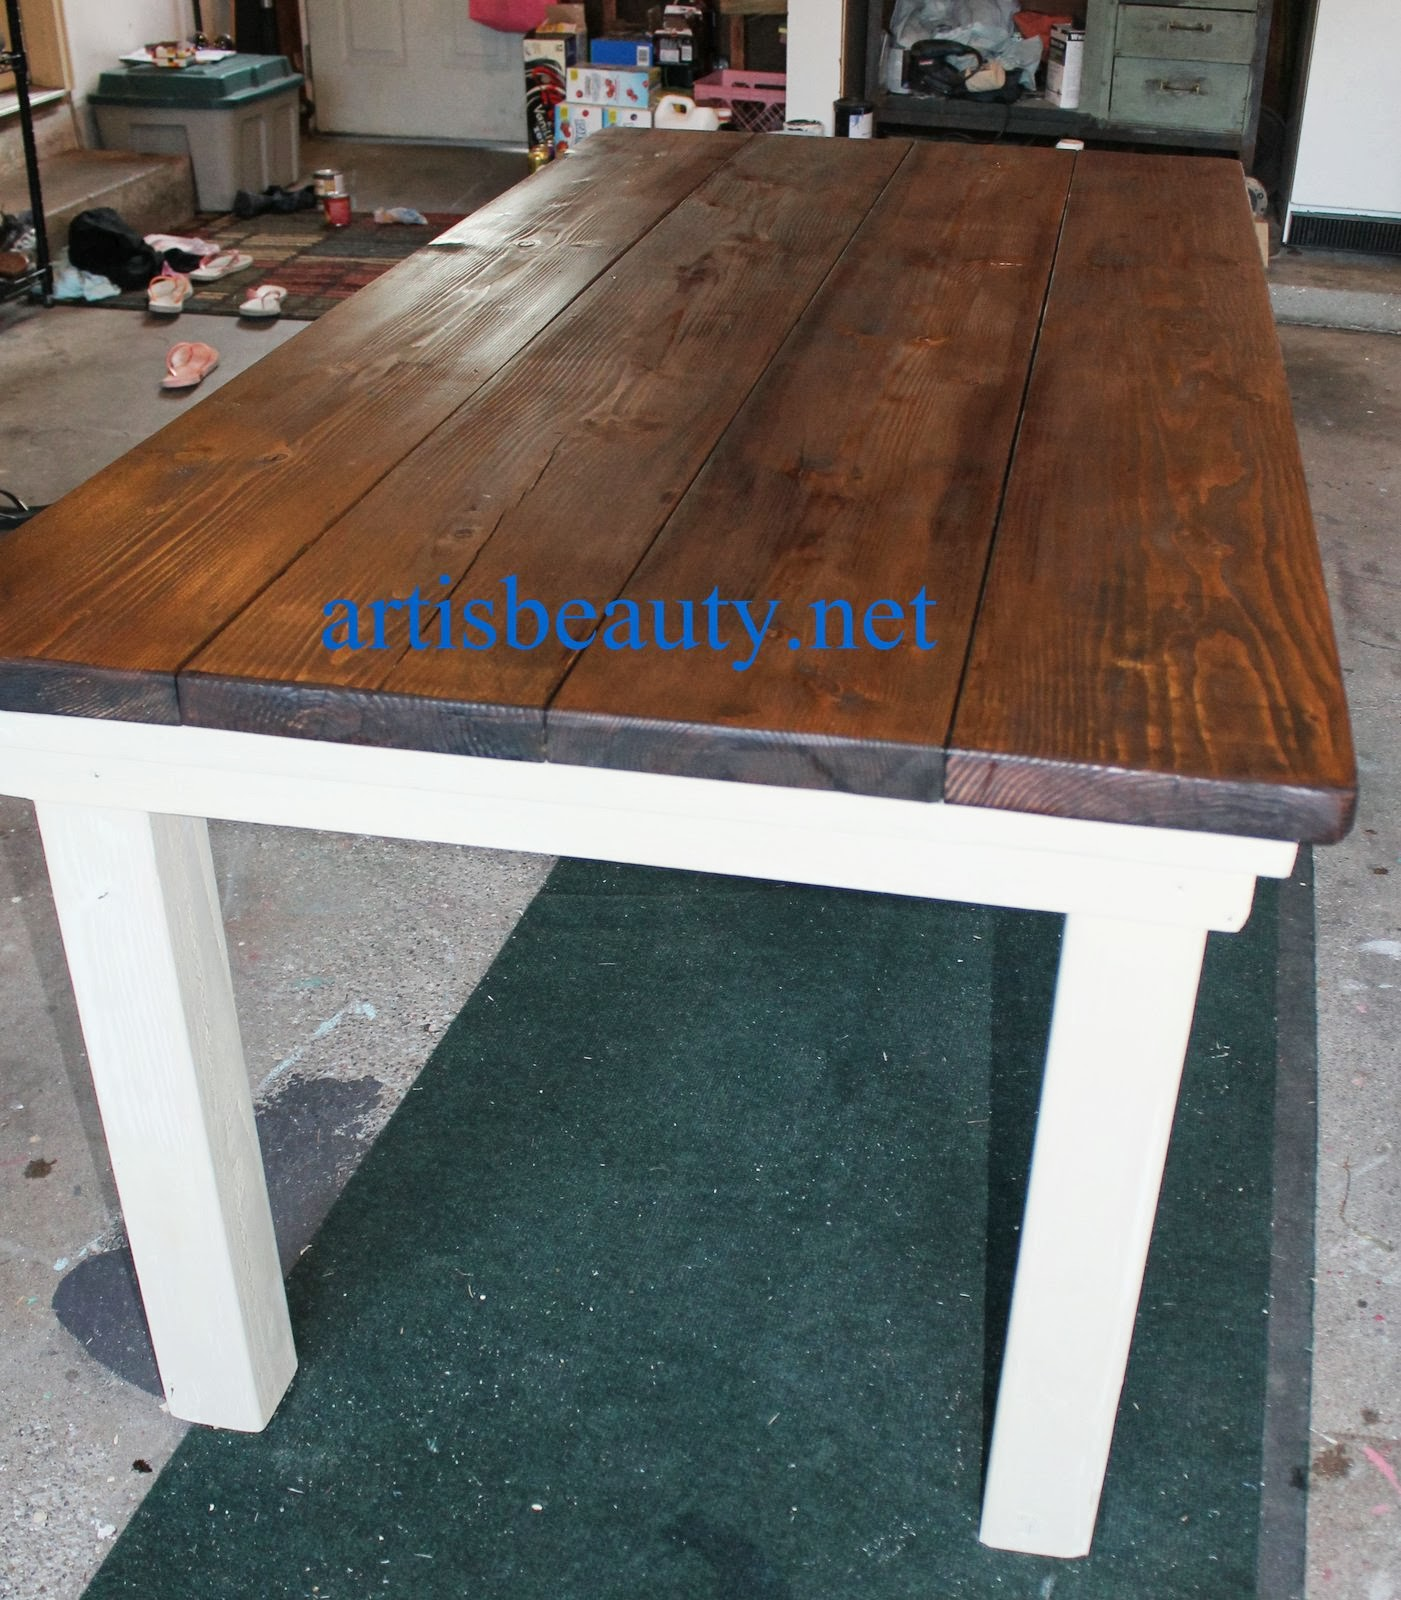 Diy Farmhouse Table With Provincial Stained Top And CeCe Caldwell Chalk  Painted Legs, Featured On Amazing Design